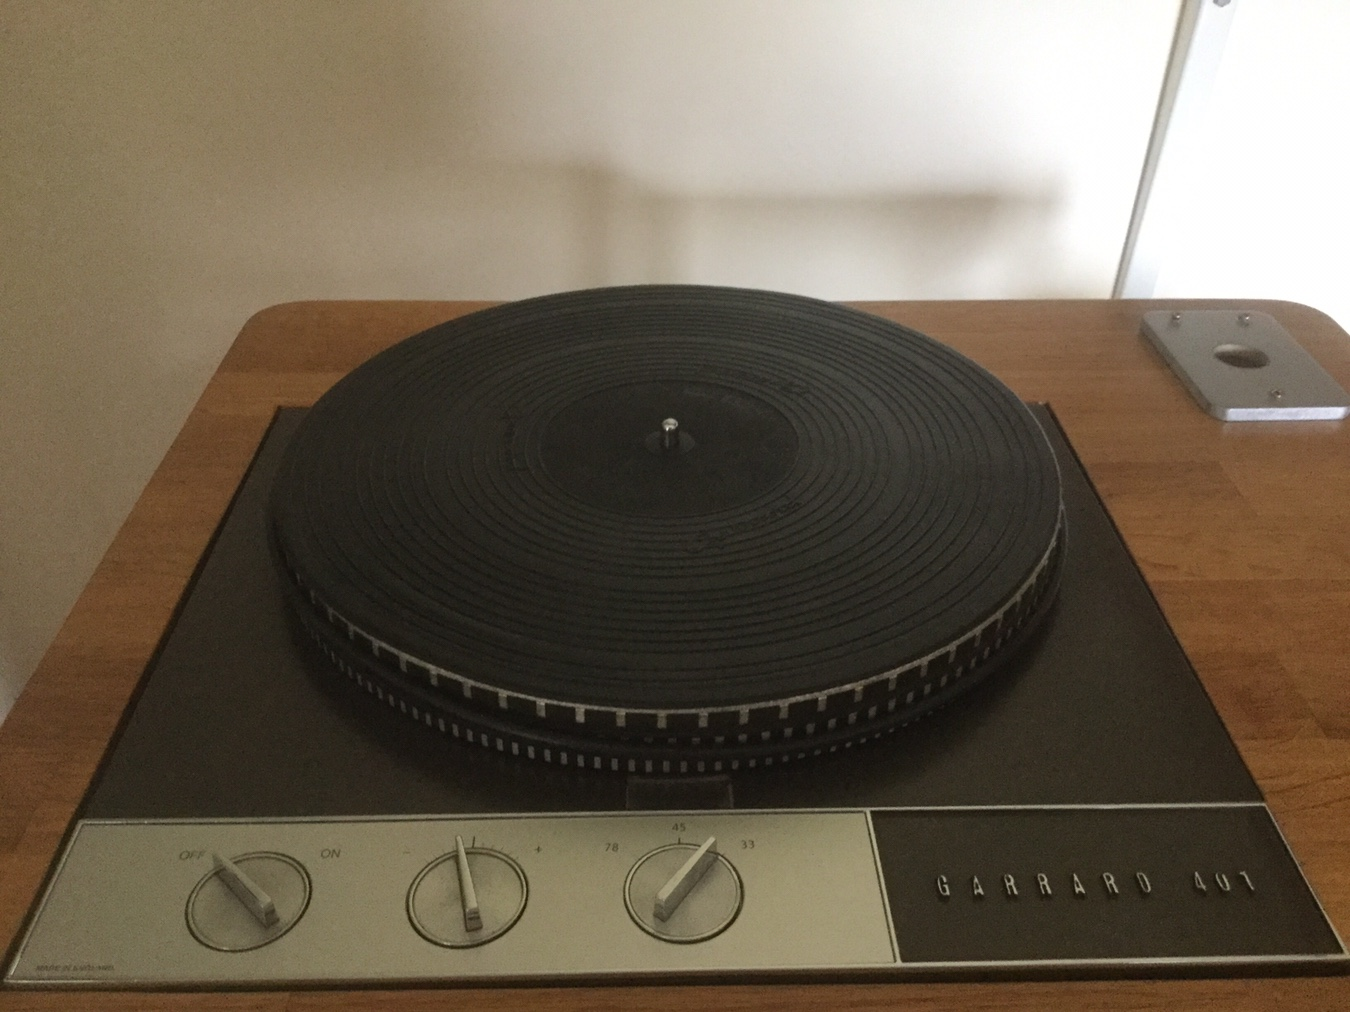 Garrard 401 for sale